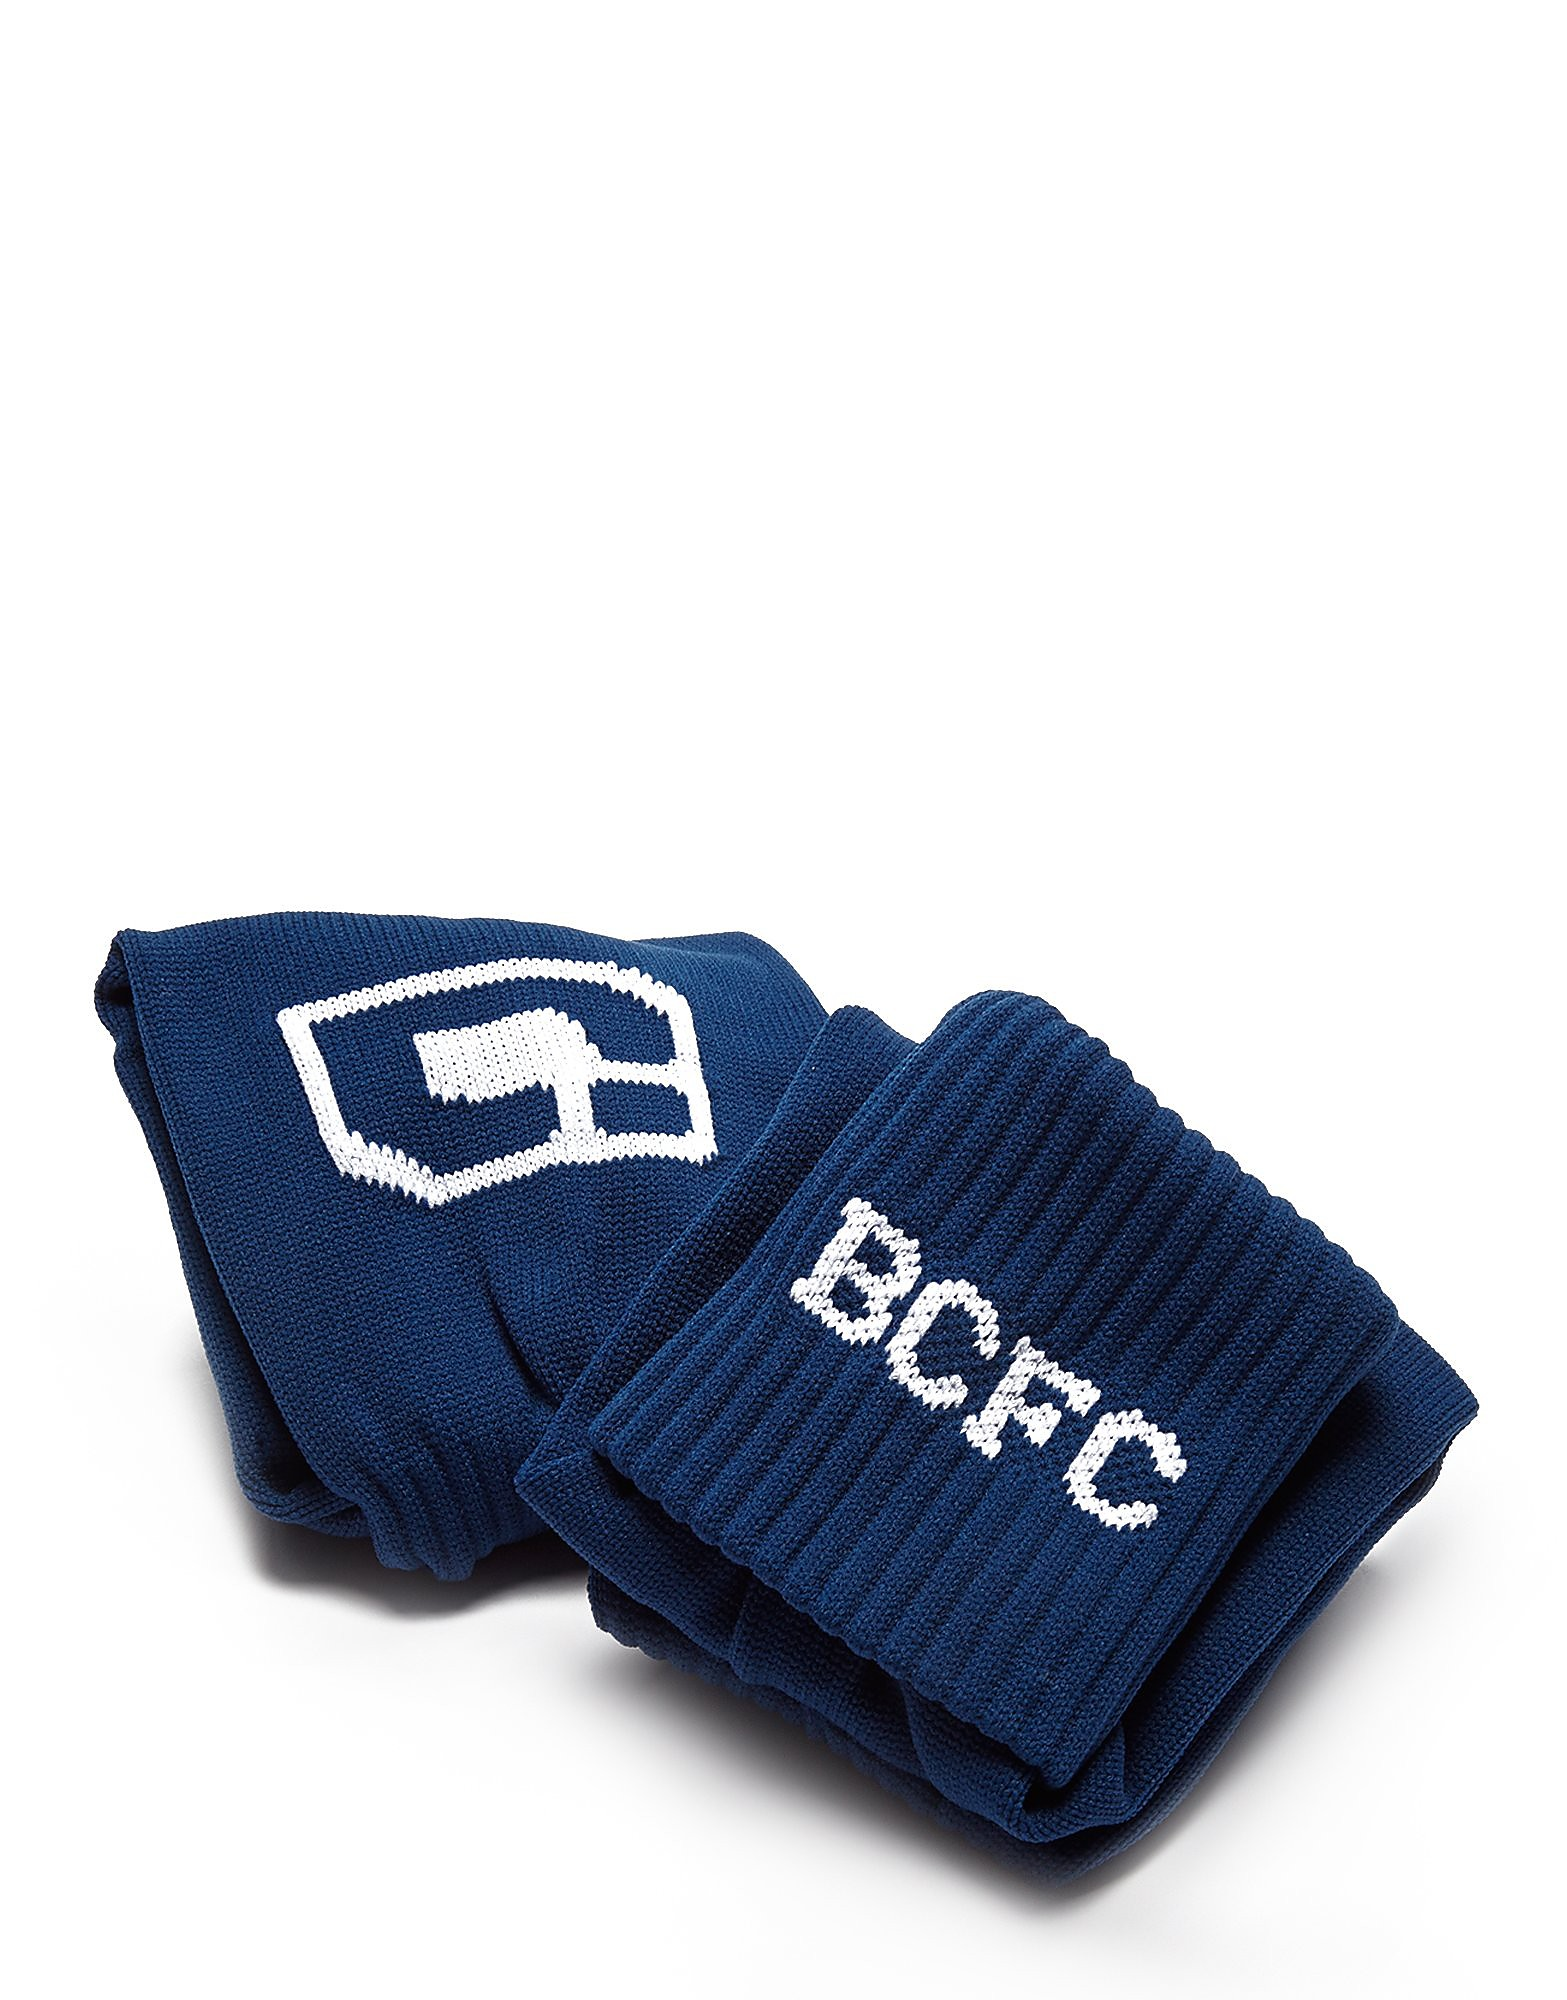 Carbrini Birmingham City FC Home 2015/16 Socks